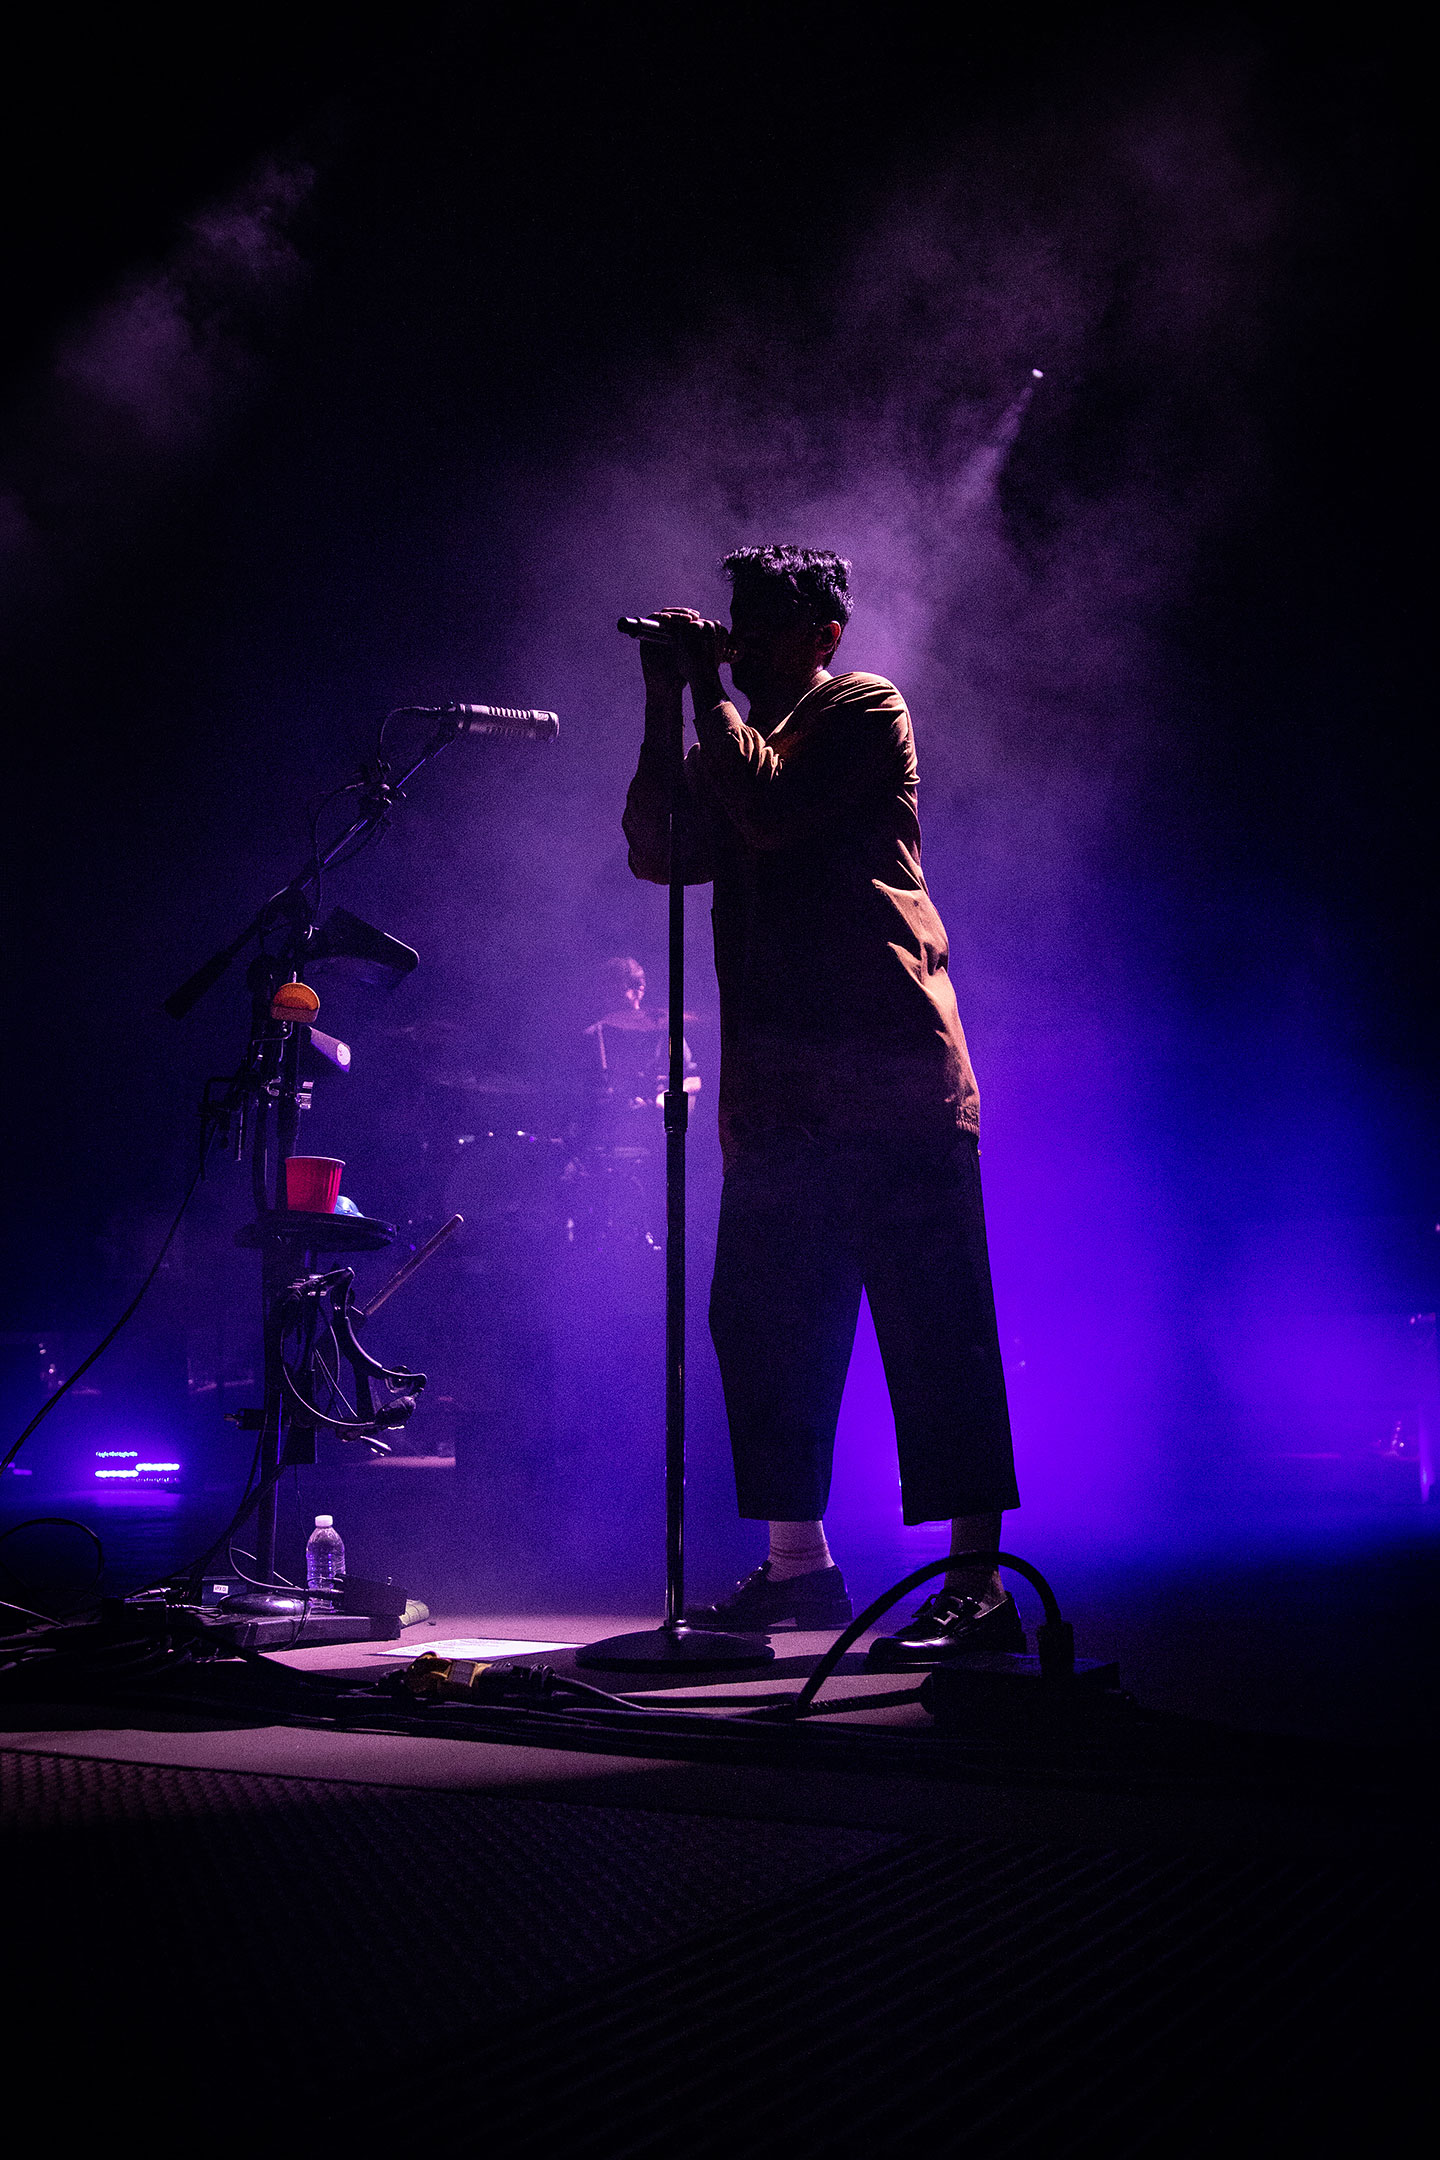 Young The Giant & Fitz and The Tantrums at Red Rocks 2019 - Denver Concert Photos